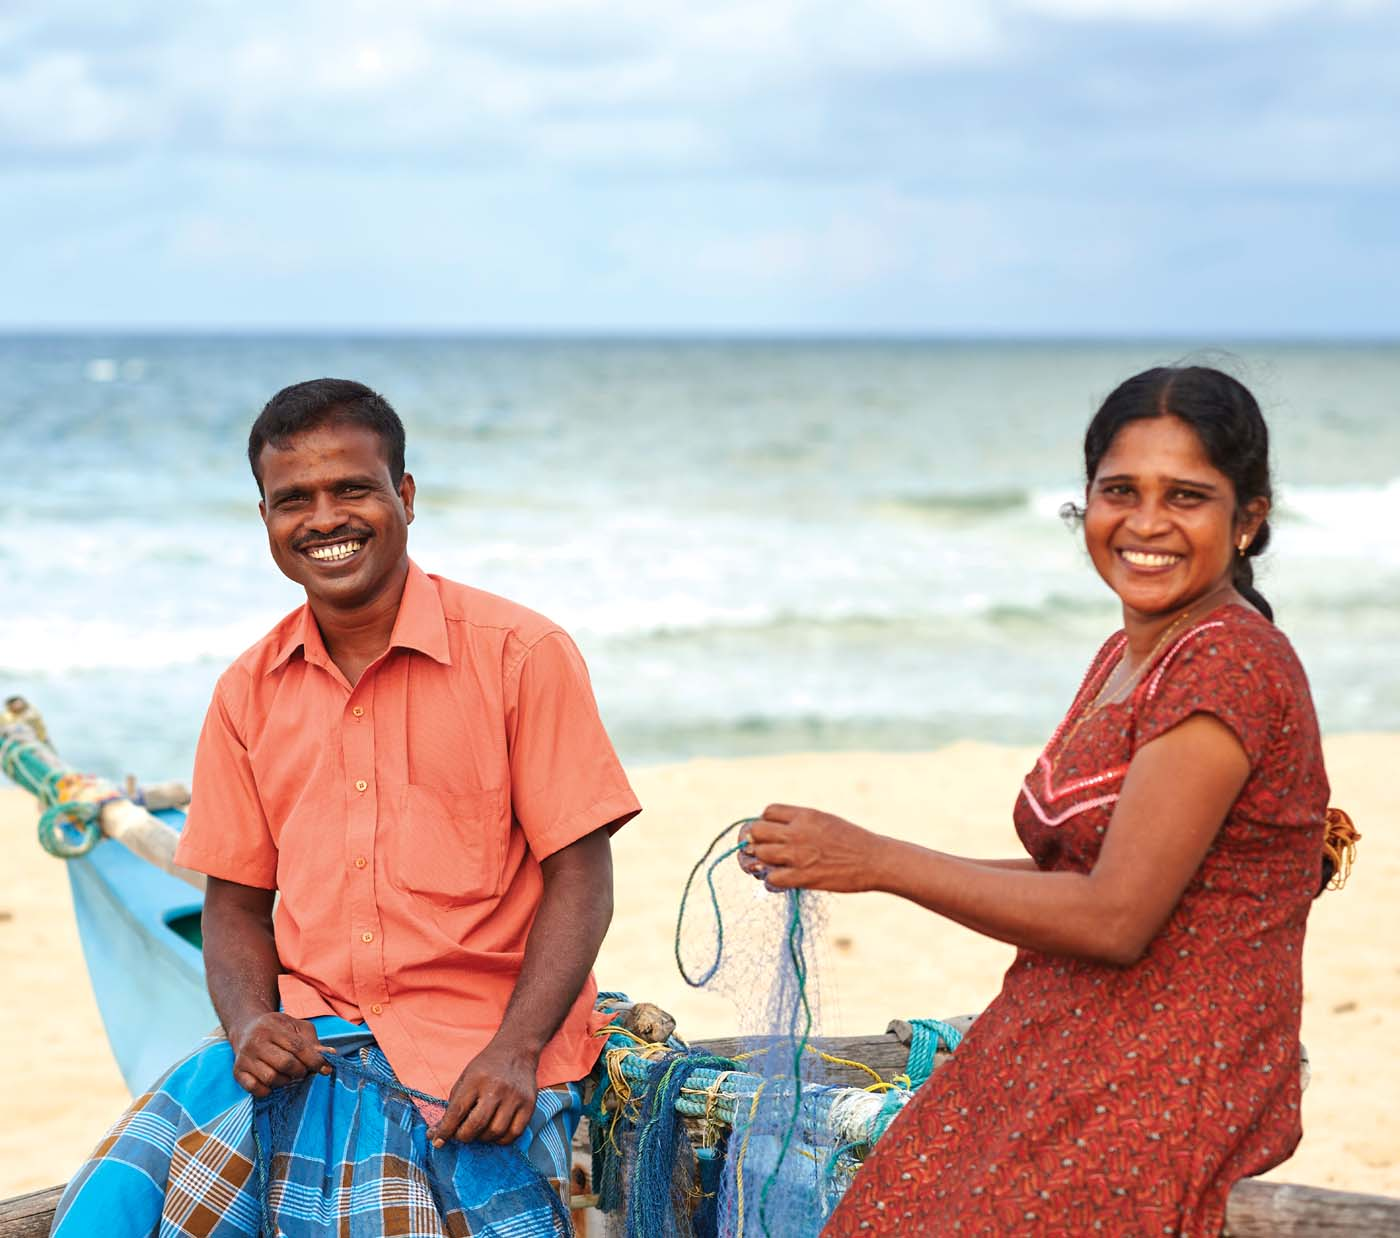 Empowering women marginalised as a result of the now-concluded war in Sri Lanka's North and East is a primary initiative of the Foundation's Small Entrepreneur Programme. Sahundala, a war widow, was provided with fishing nets to sustain a viable income with the help of her brother Rajan.